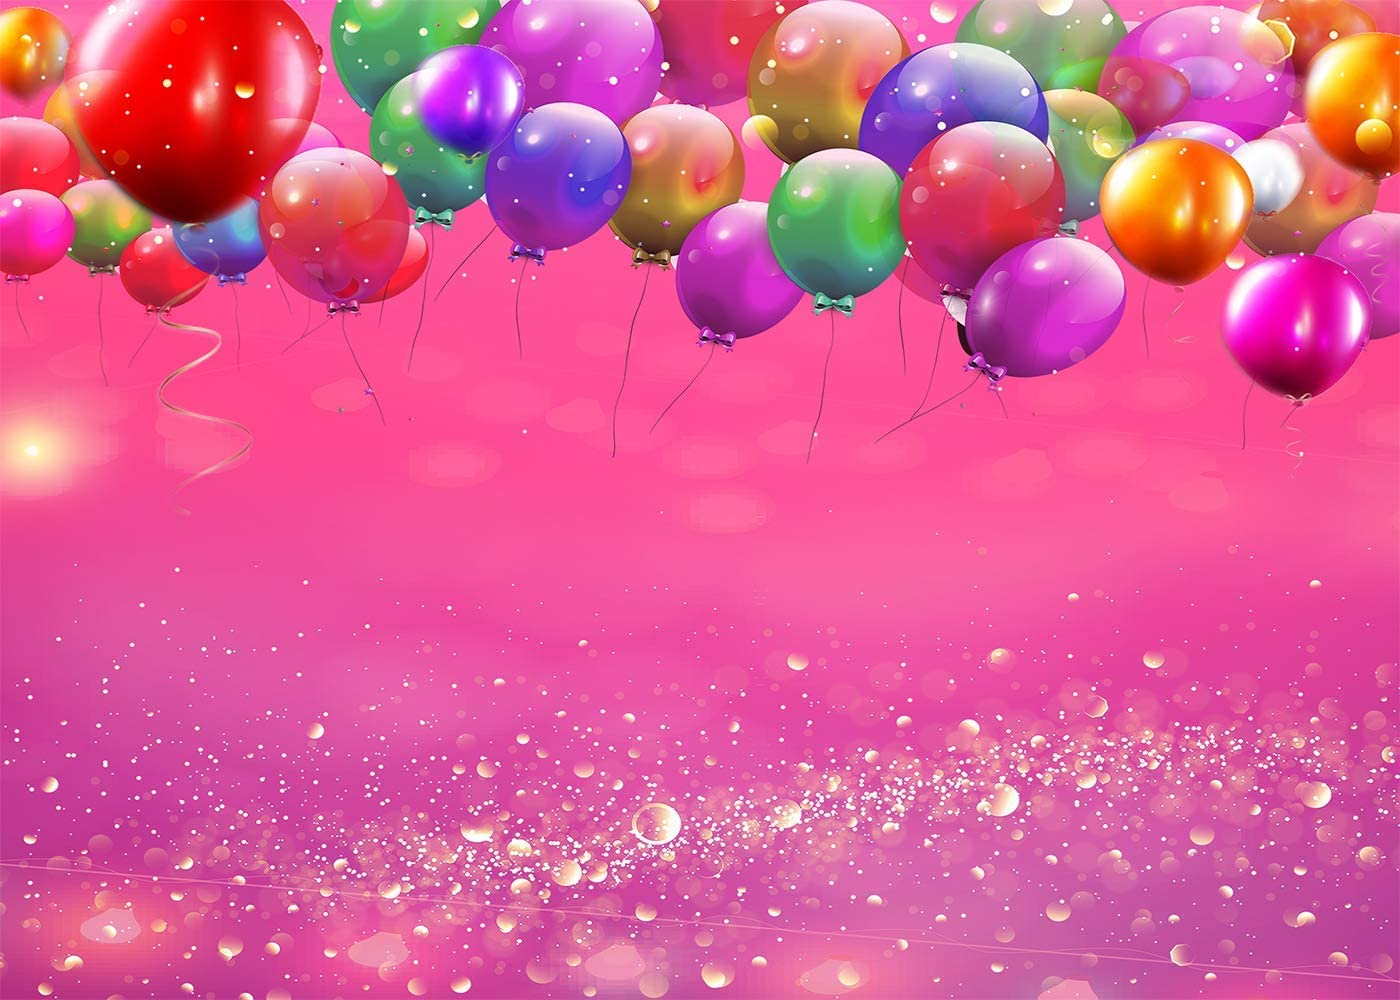 10x8ft Colorful Balloons Photography Backdrop Birthday Party Pink Purple Backdrops for Kid Baby Shower Decorative Banner Photo Studio Props HXFU235